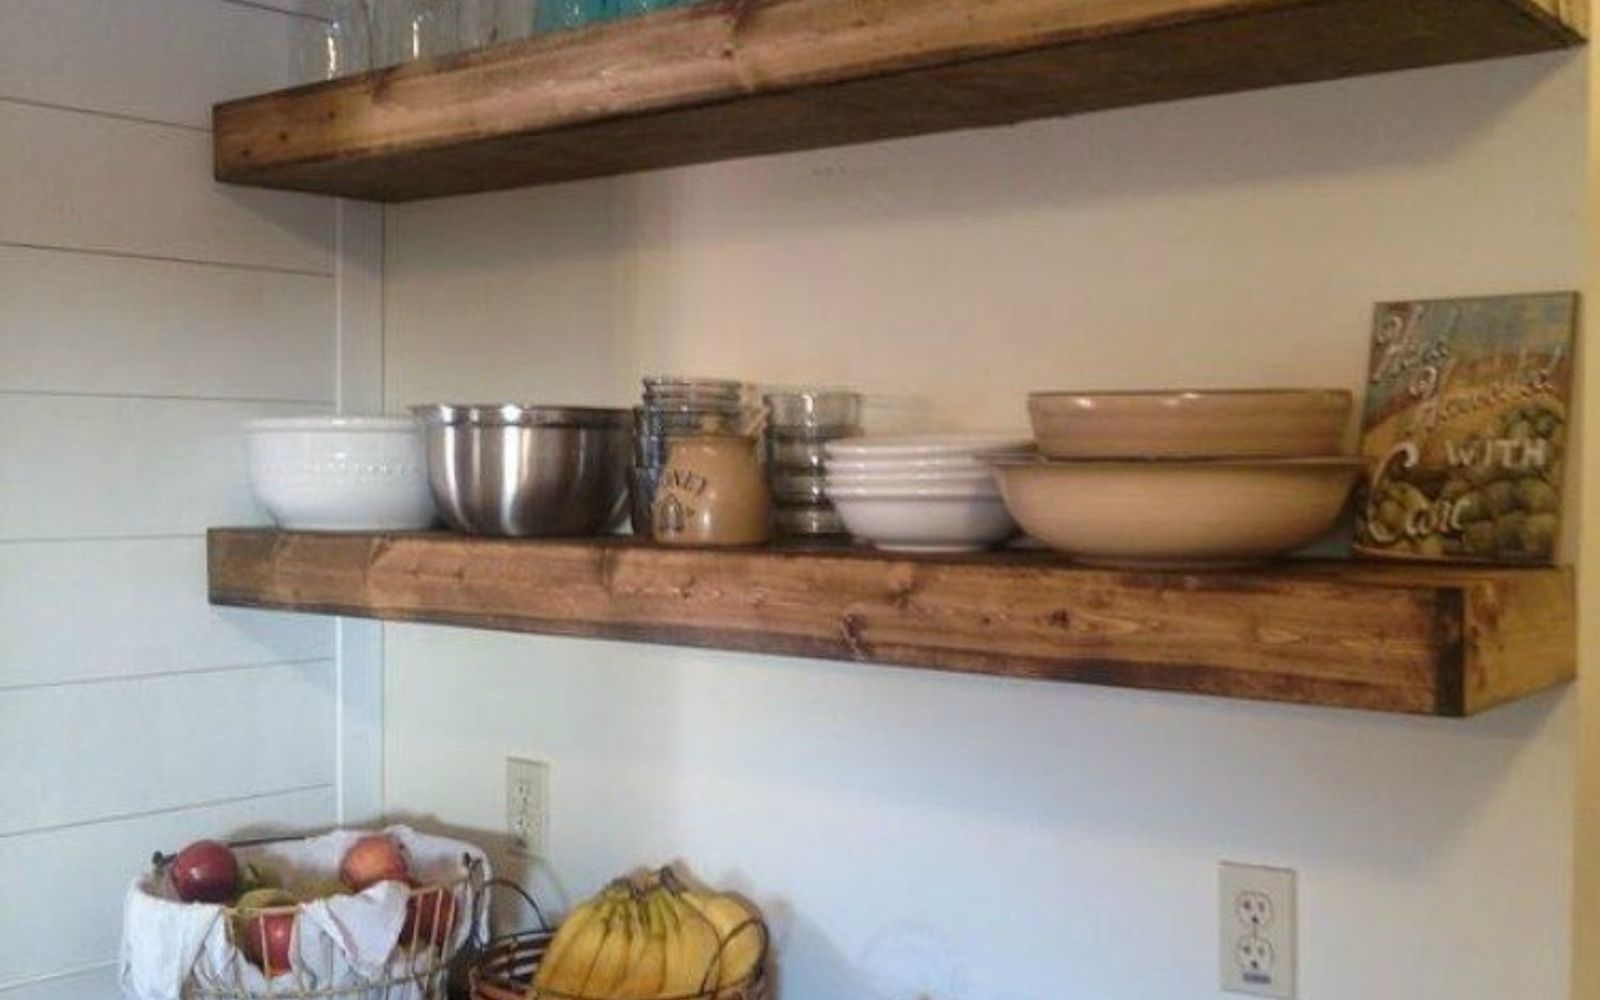 how to make extra counter space in kitchen - trendyexaminer